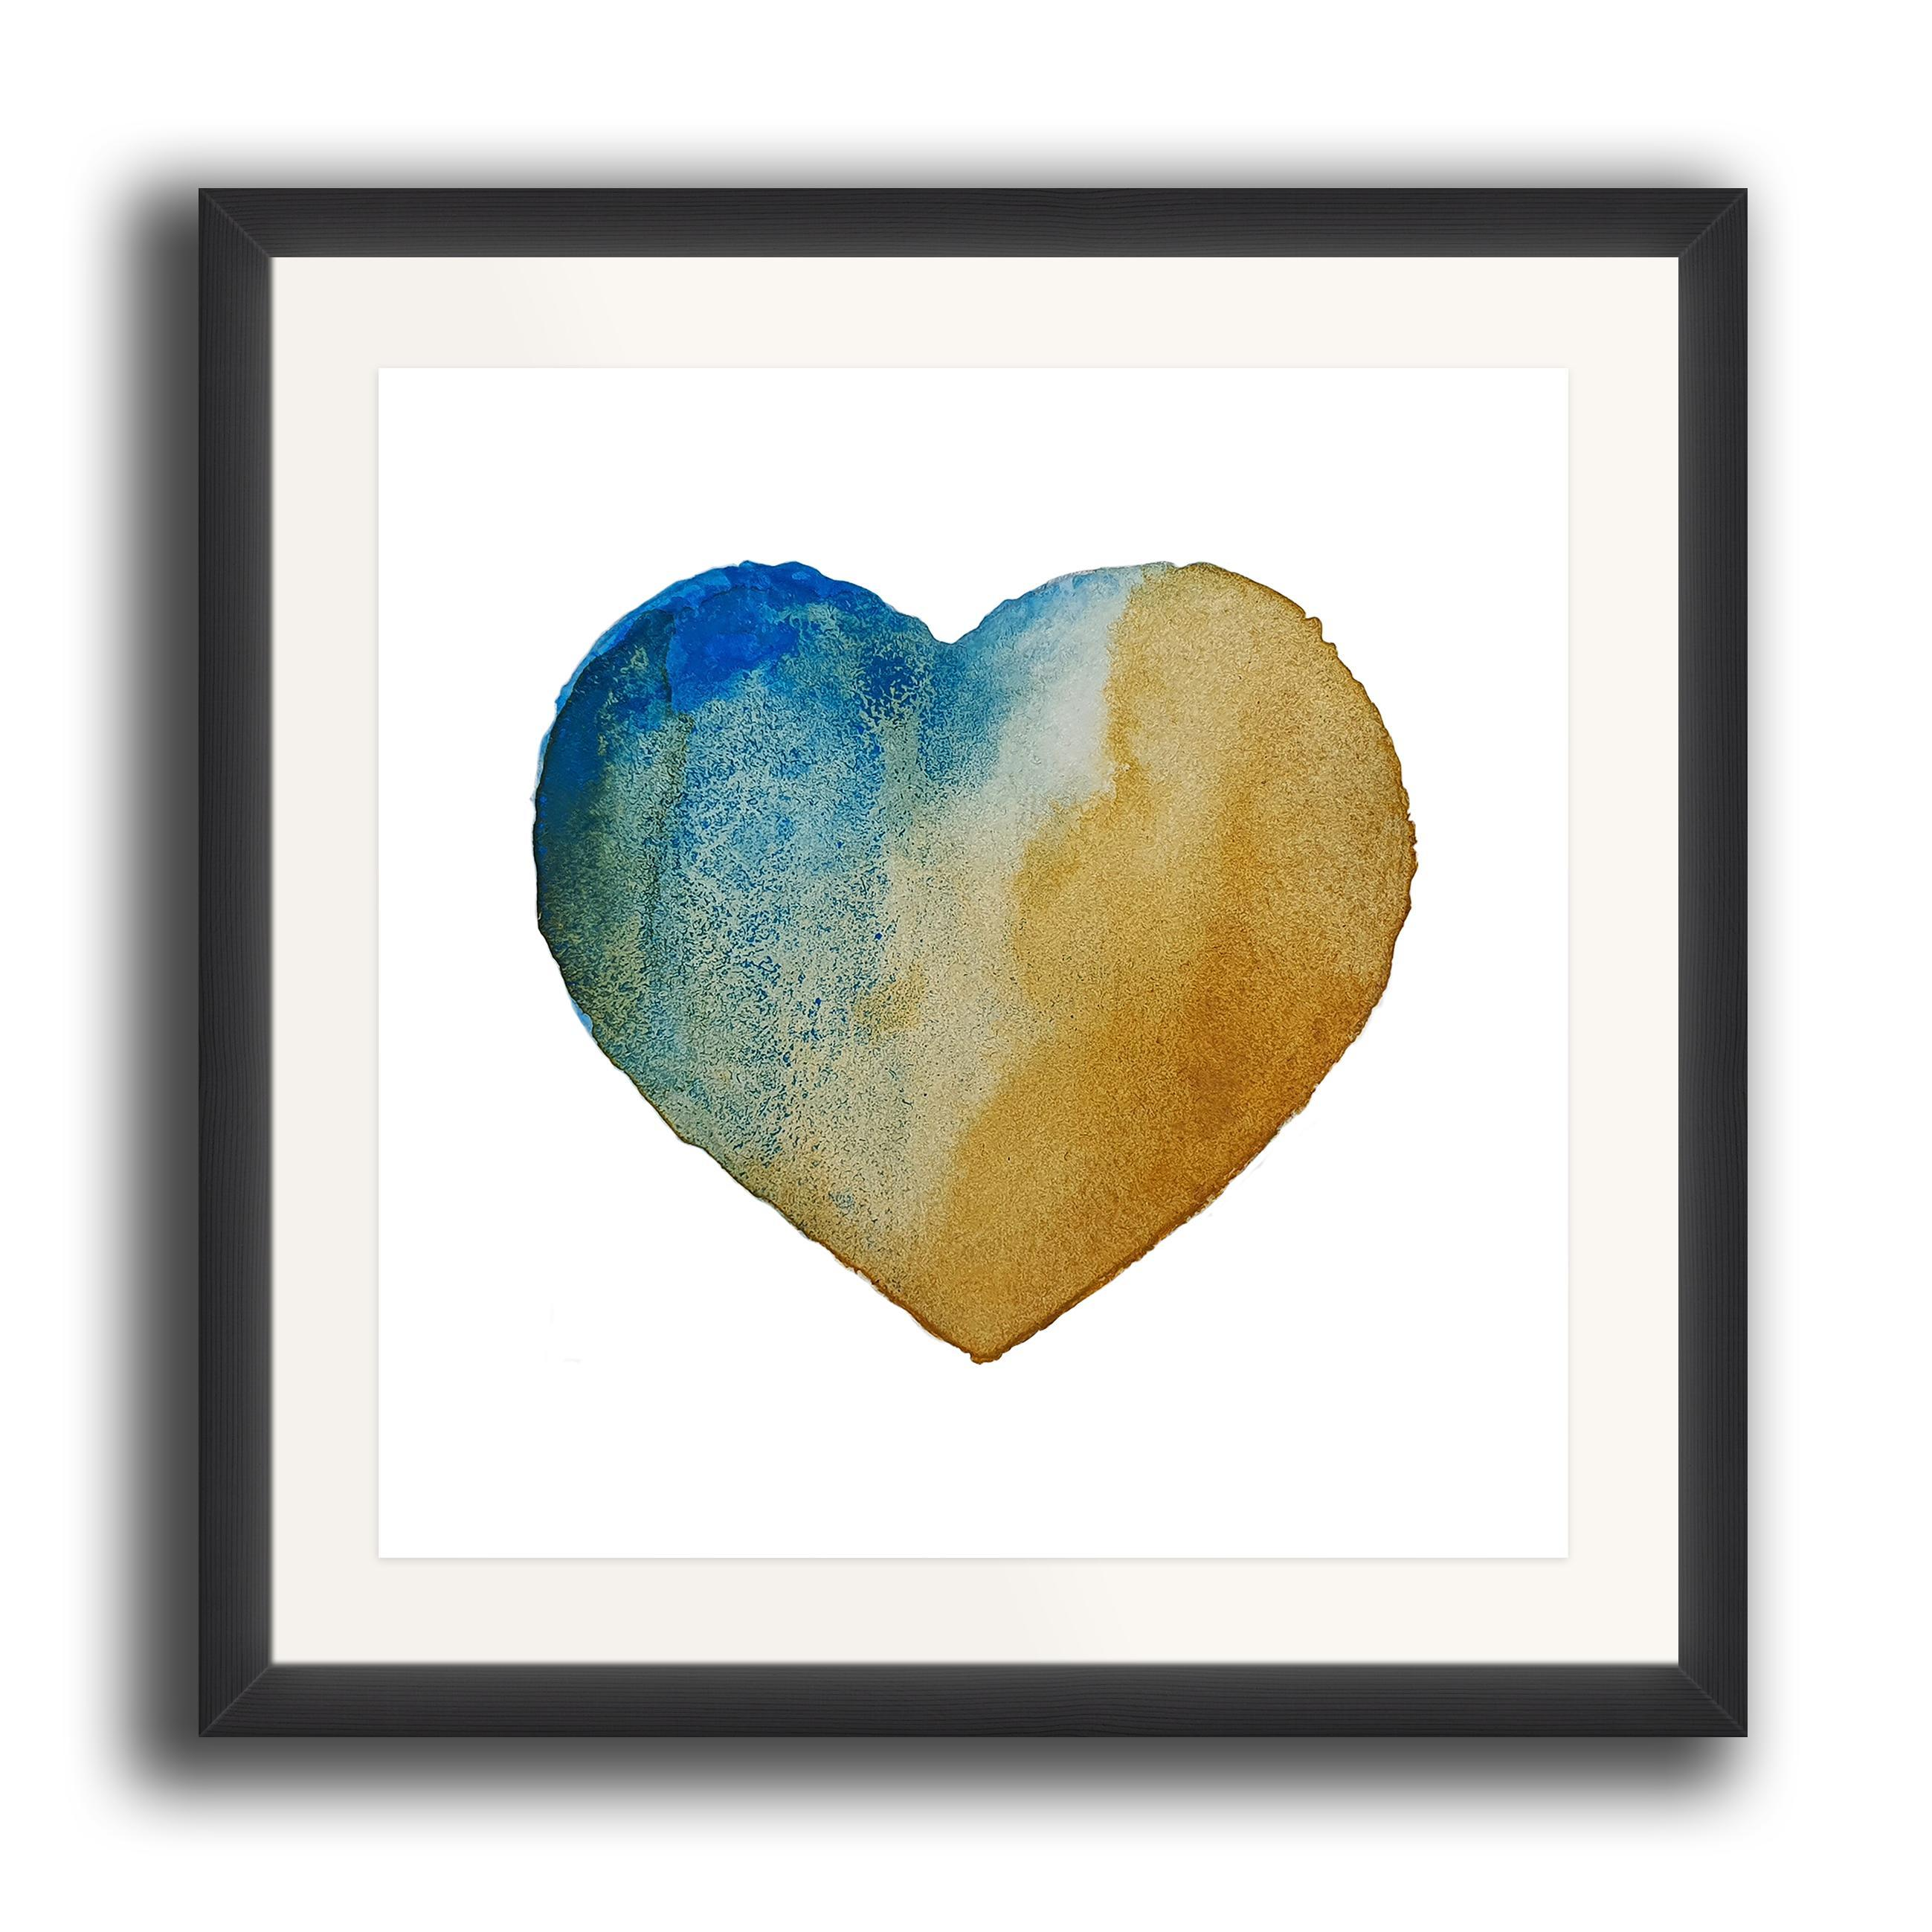 A watercolour print by Clarrie-Anne on eco fine art paper titled Beach Heart showing a textured turquoise golden sand coloured heart on a white background. The image is set in a black coloured picture frame.